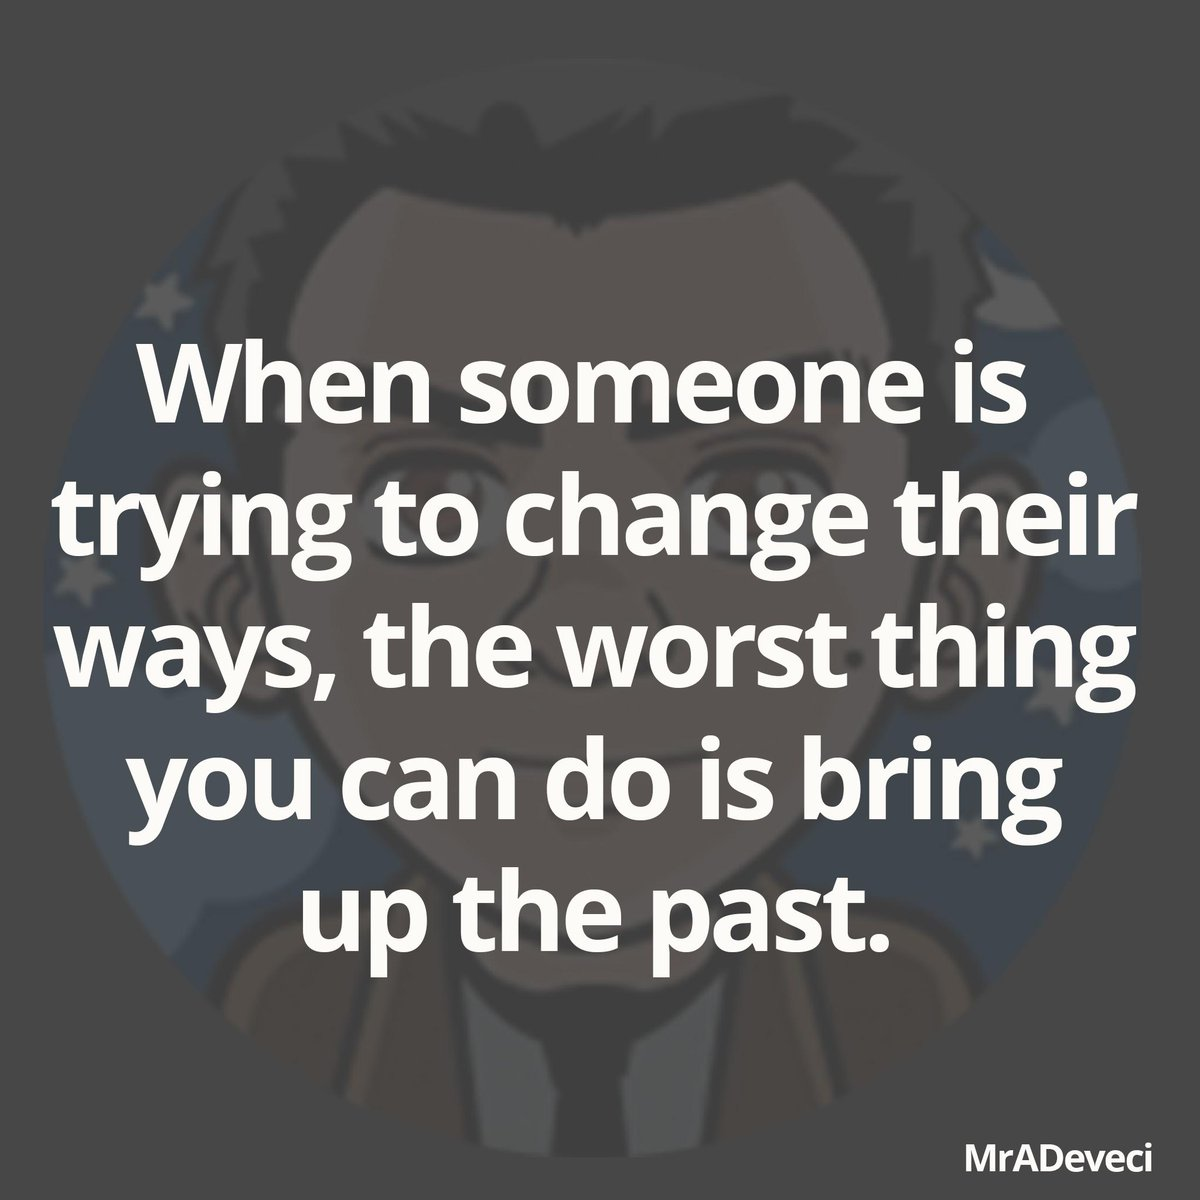 When someone is trying to change their ways, the worse thing you can do is bring up the past. #quote #qotd #positive http://t.co/fqWwLDU6hO